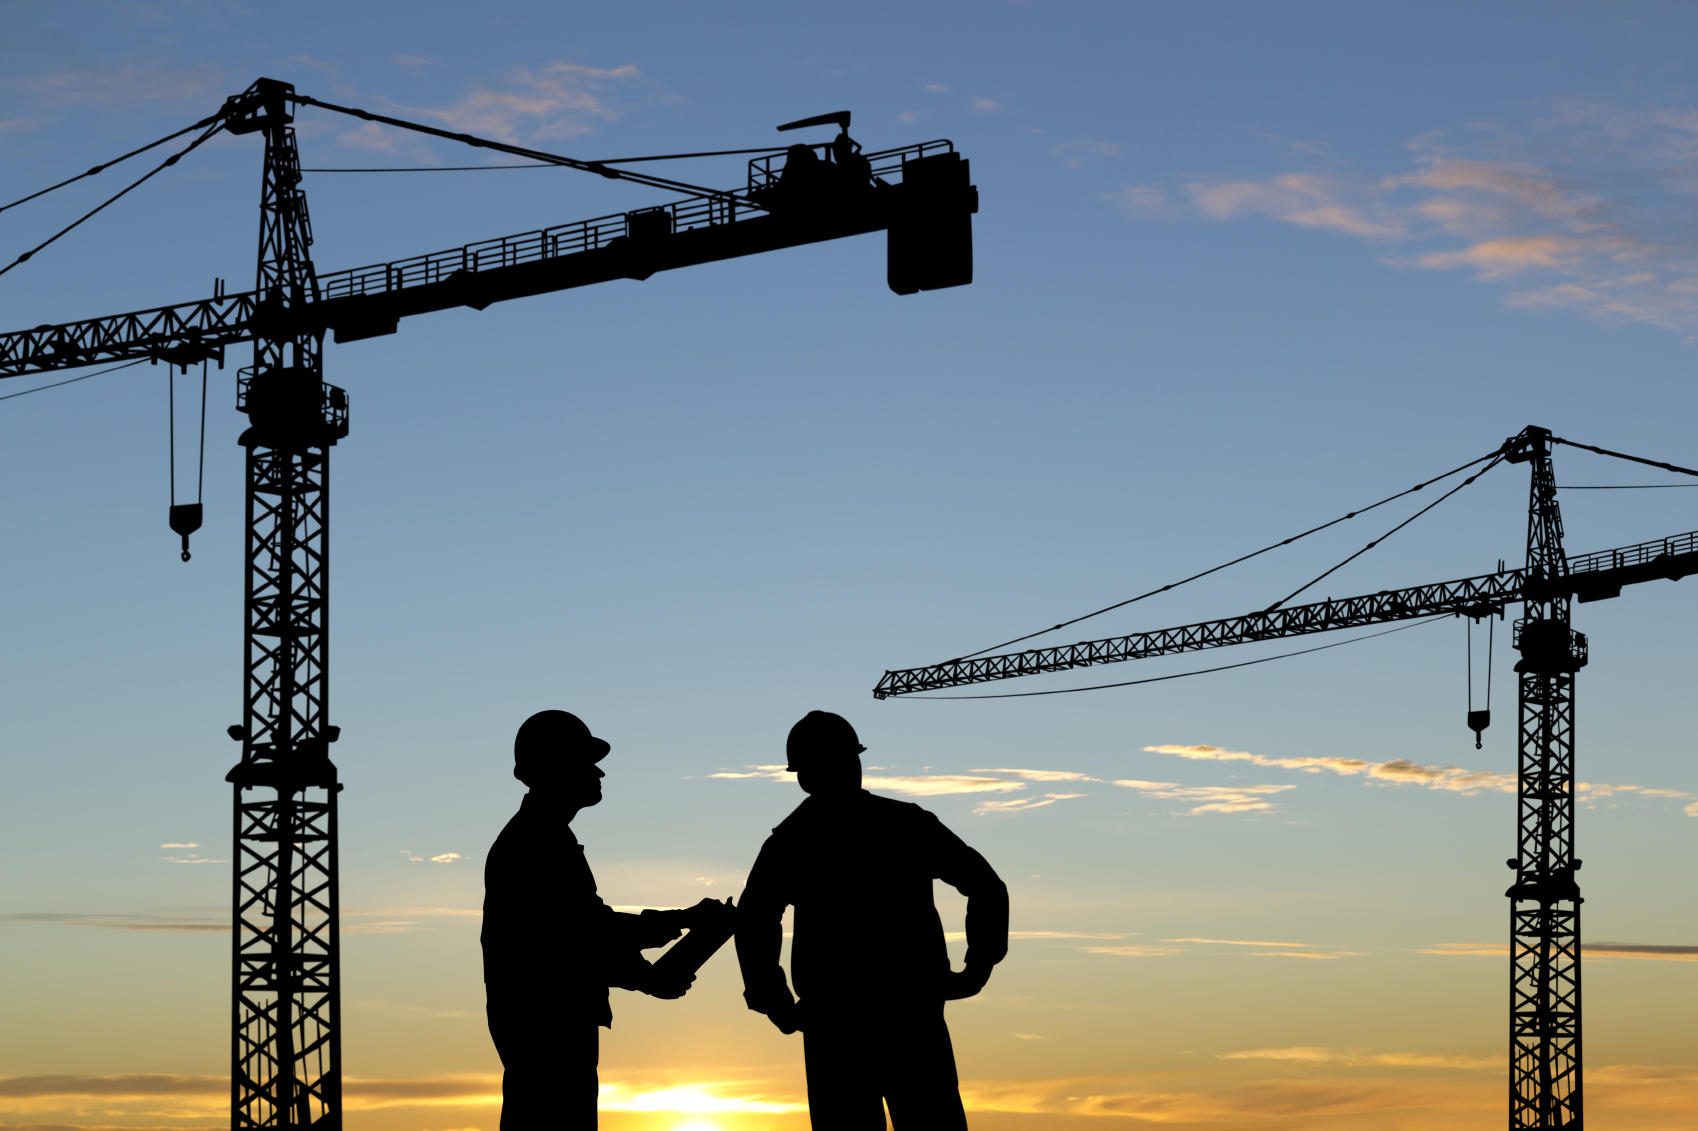 builders_and_crane_silhouette.jpg